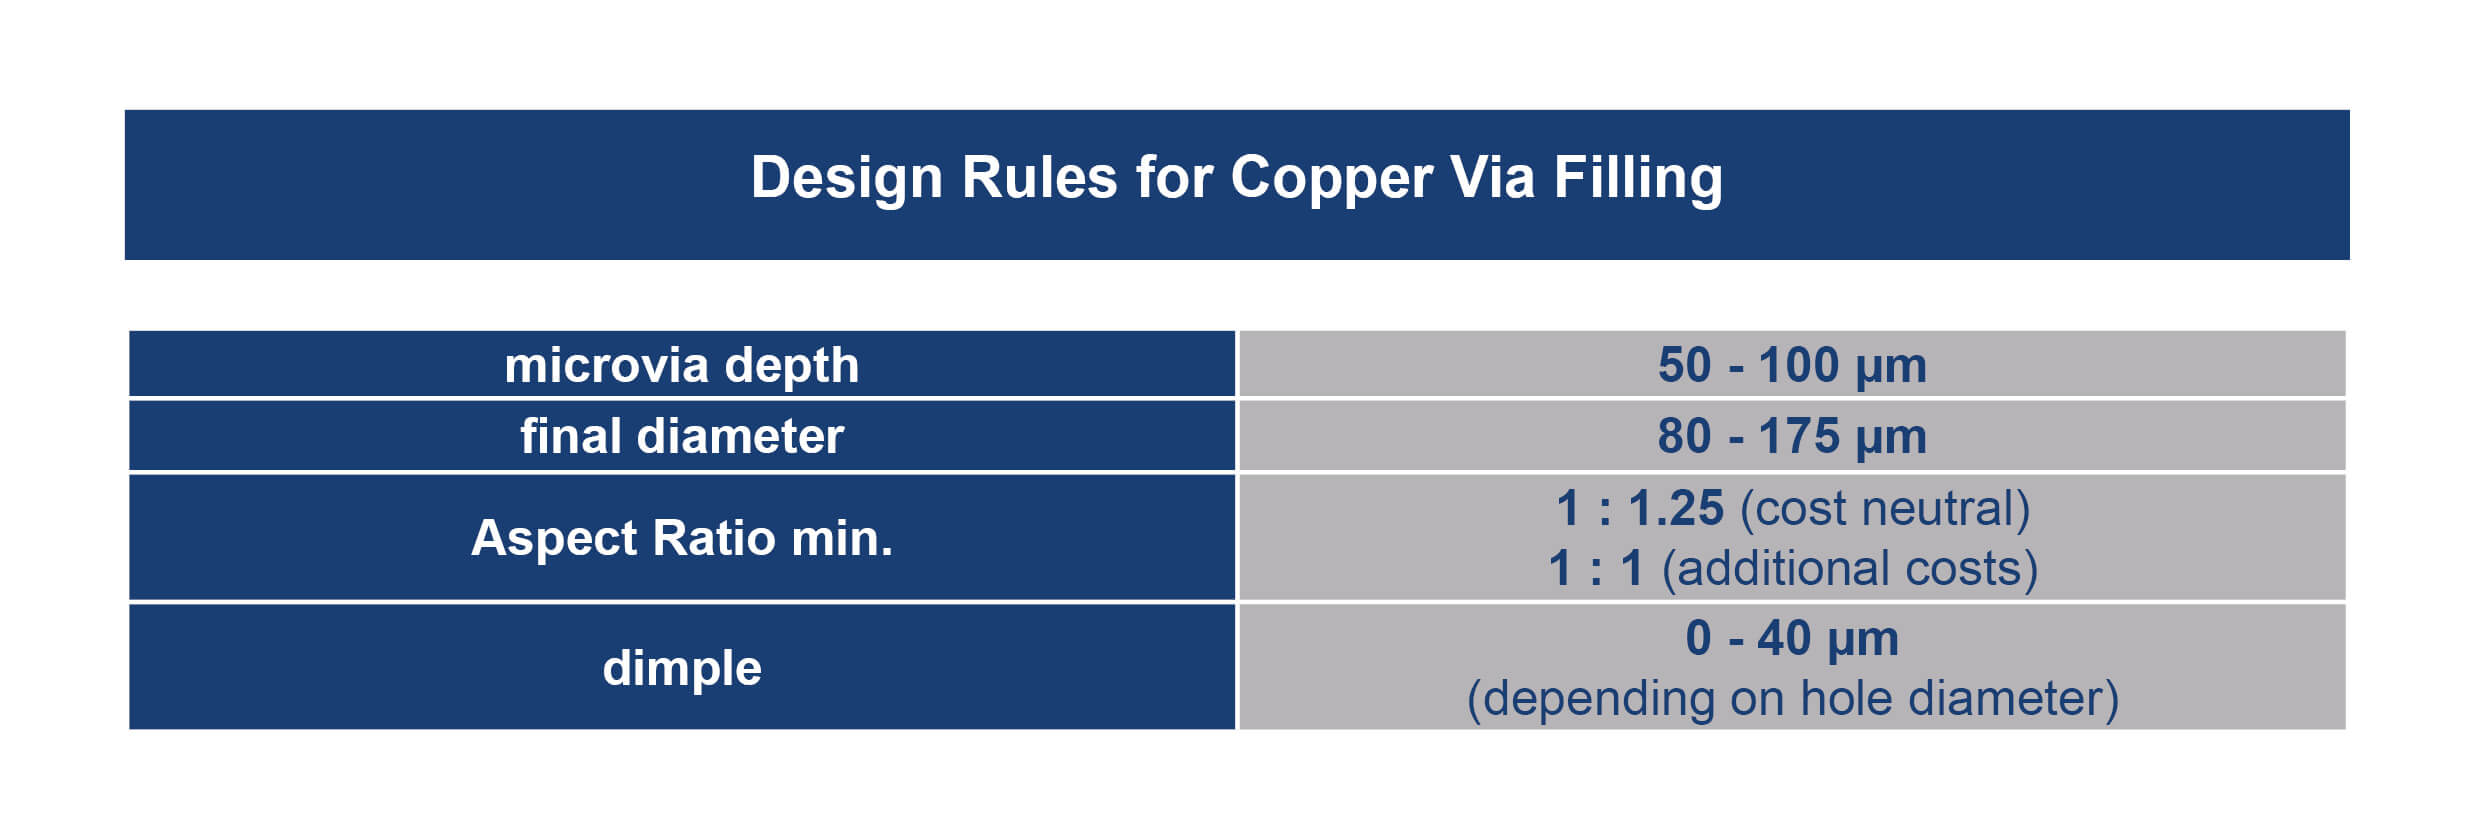 Unimicron HDI Technology Copper Filling Design Rules